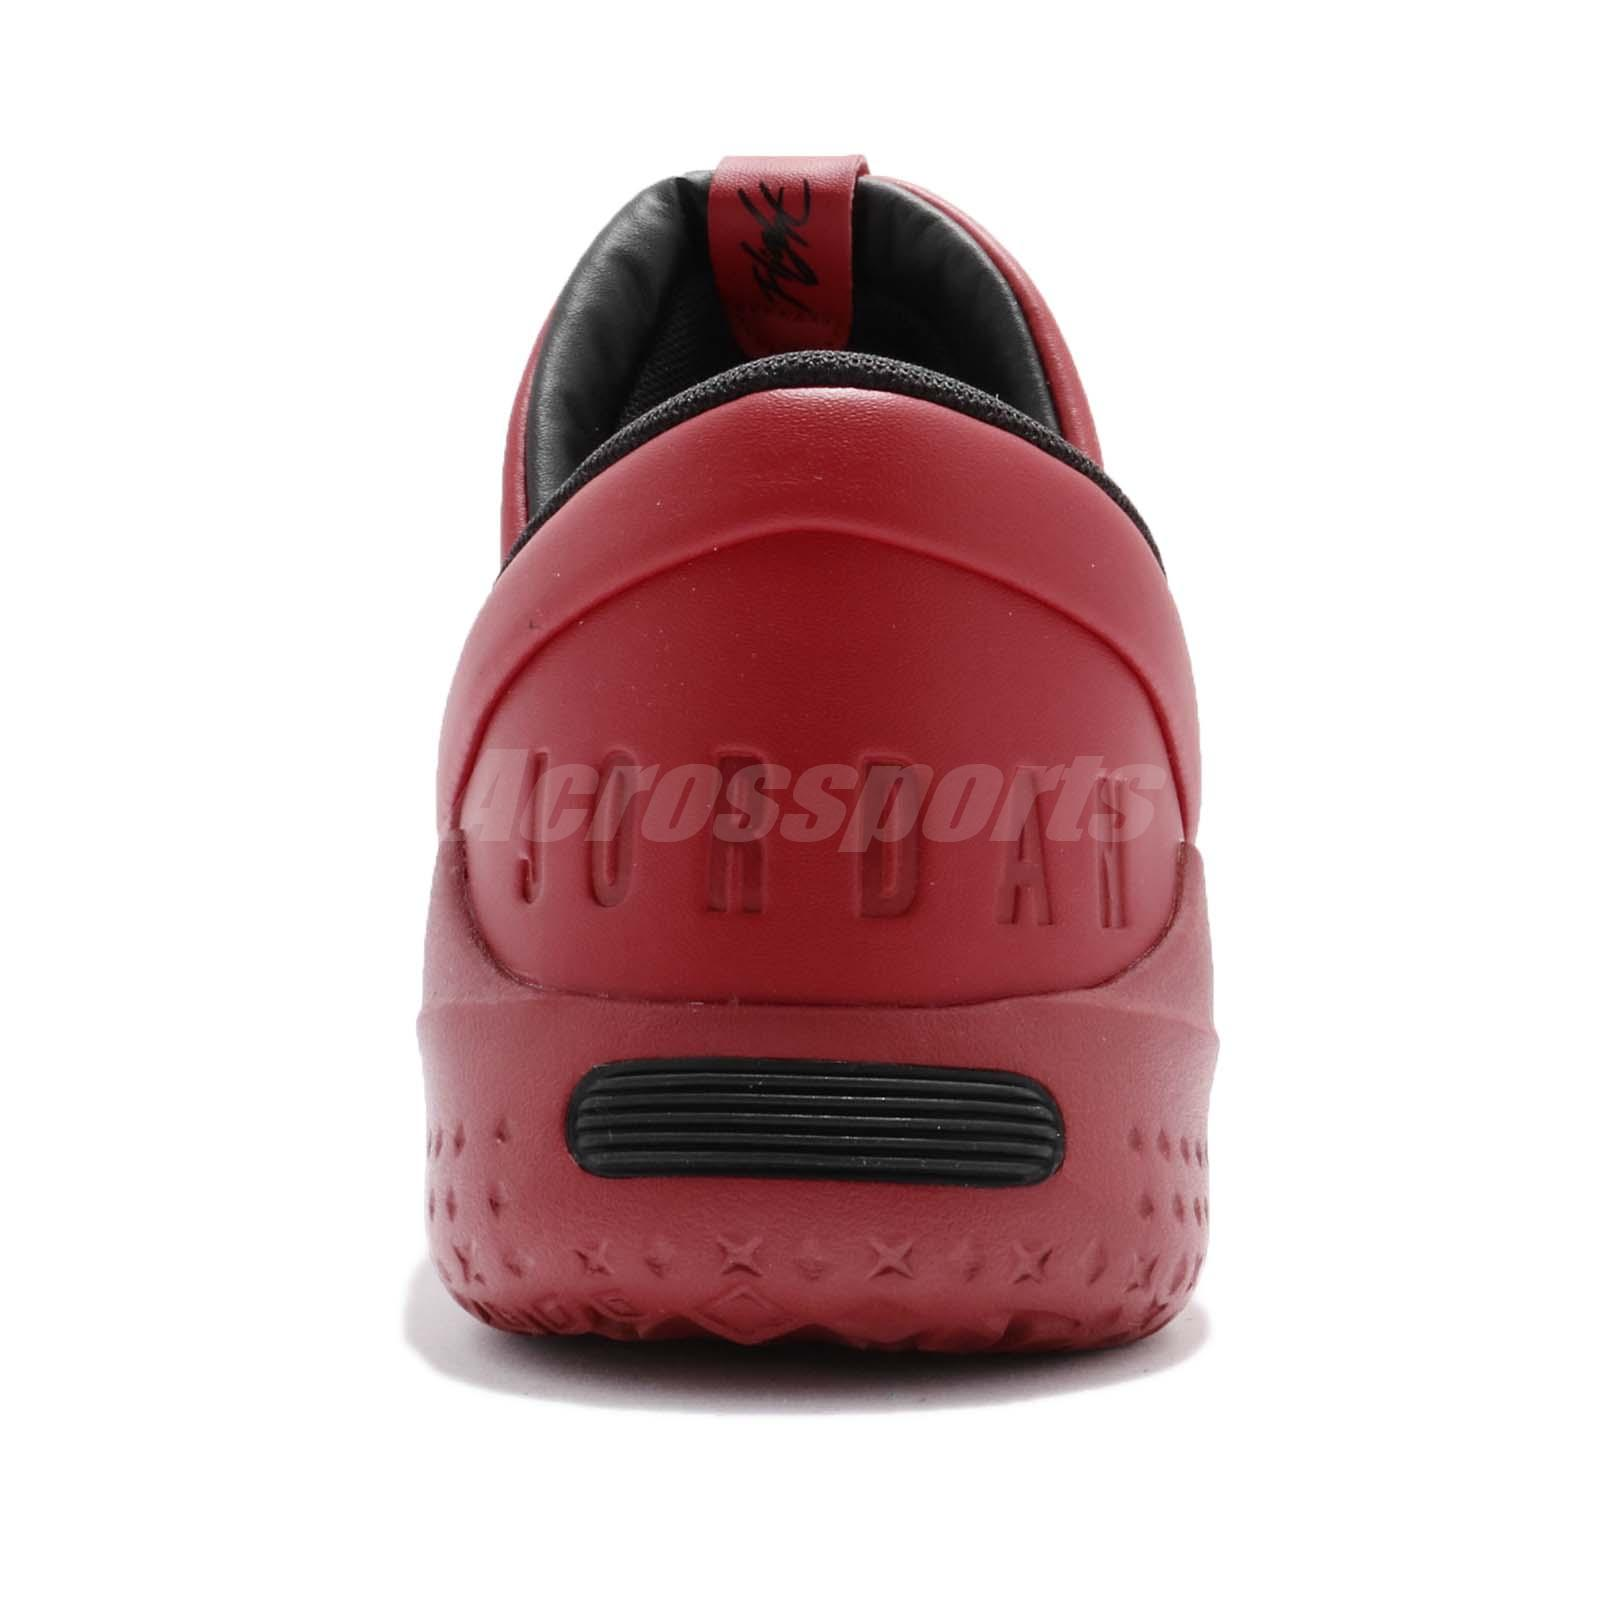 777d1cfccee0b5 Nike Jordan Flight Luxe Gym Red Black Bulls Men Shoes Sneakers ...